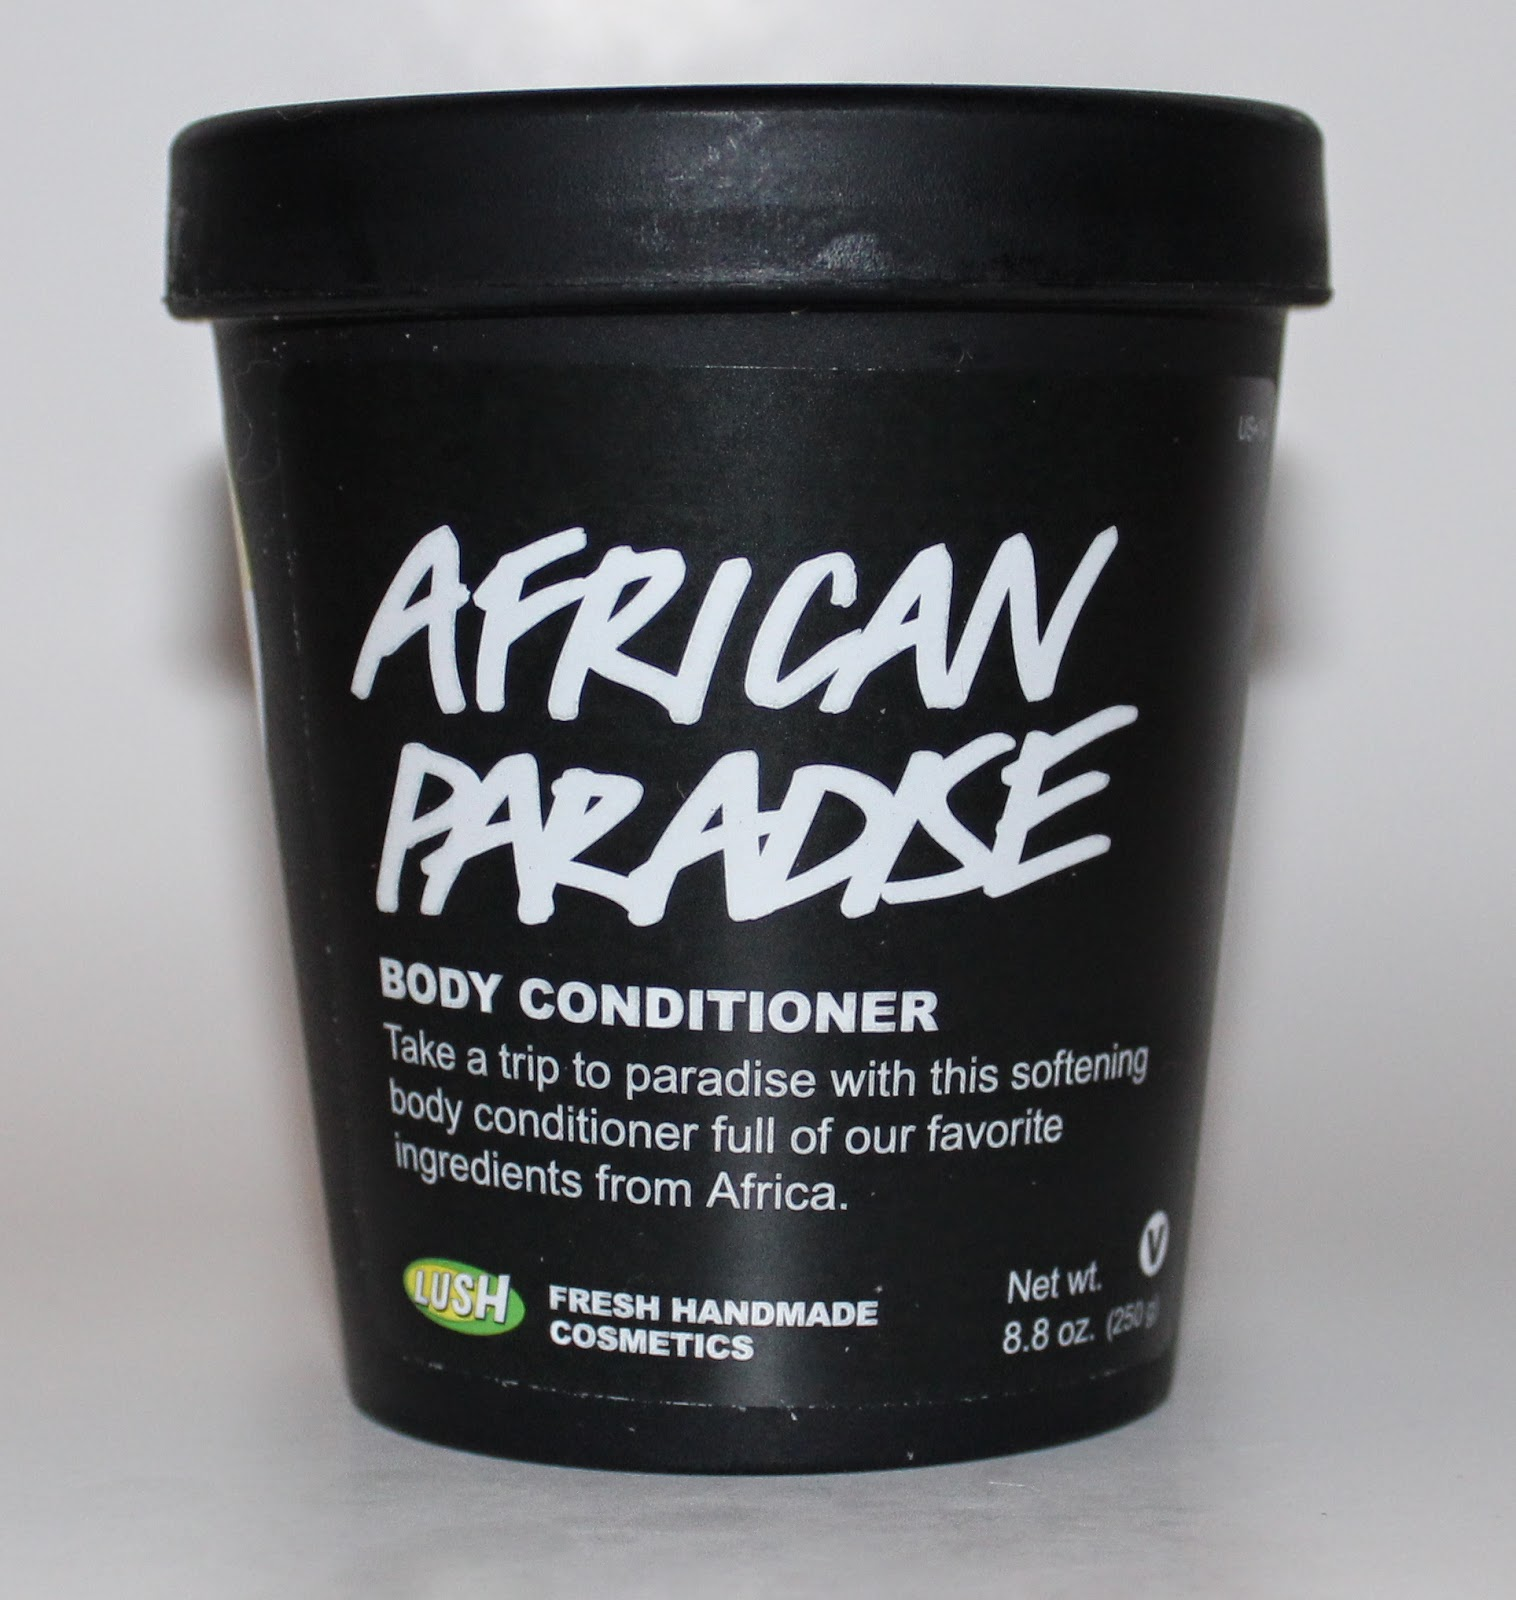 Lush African Paradise Body Conditioner